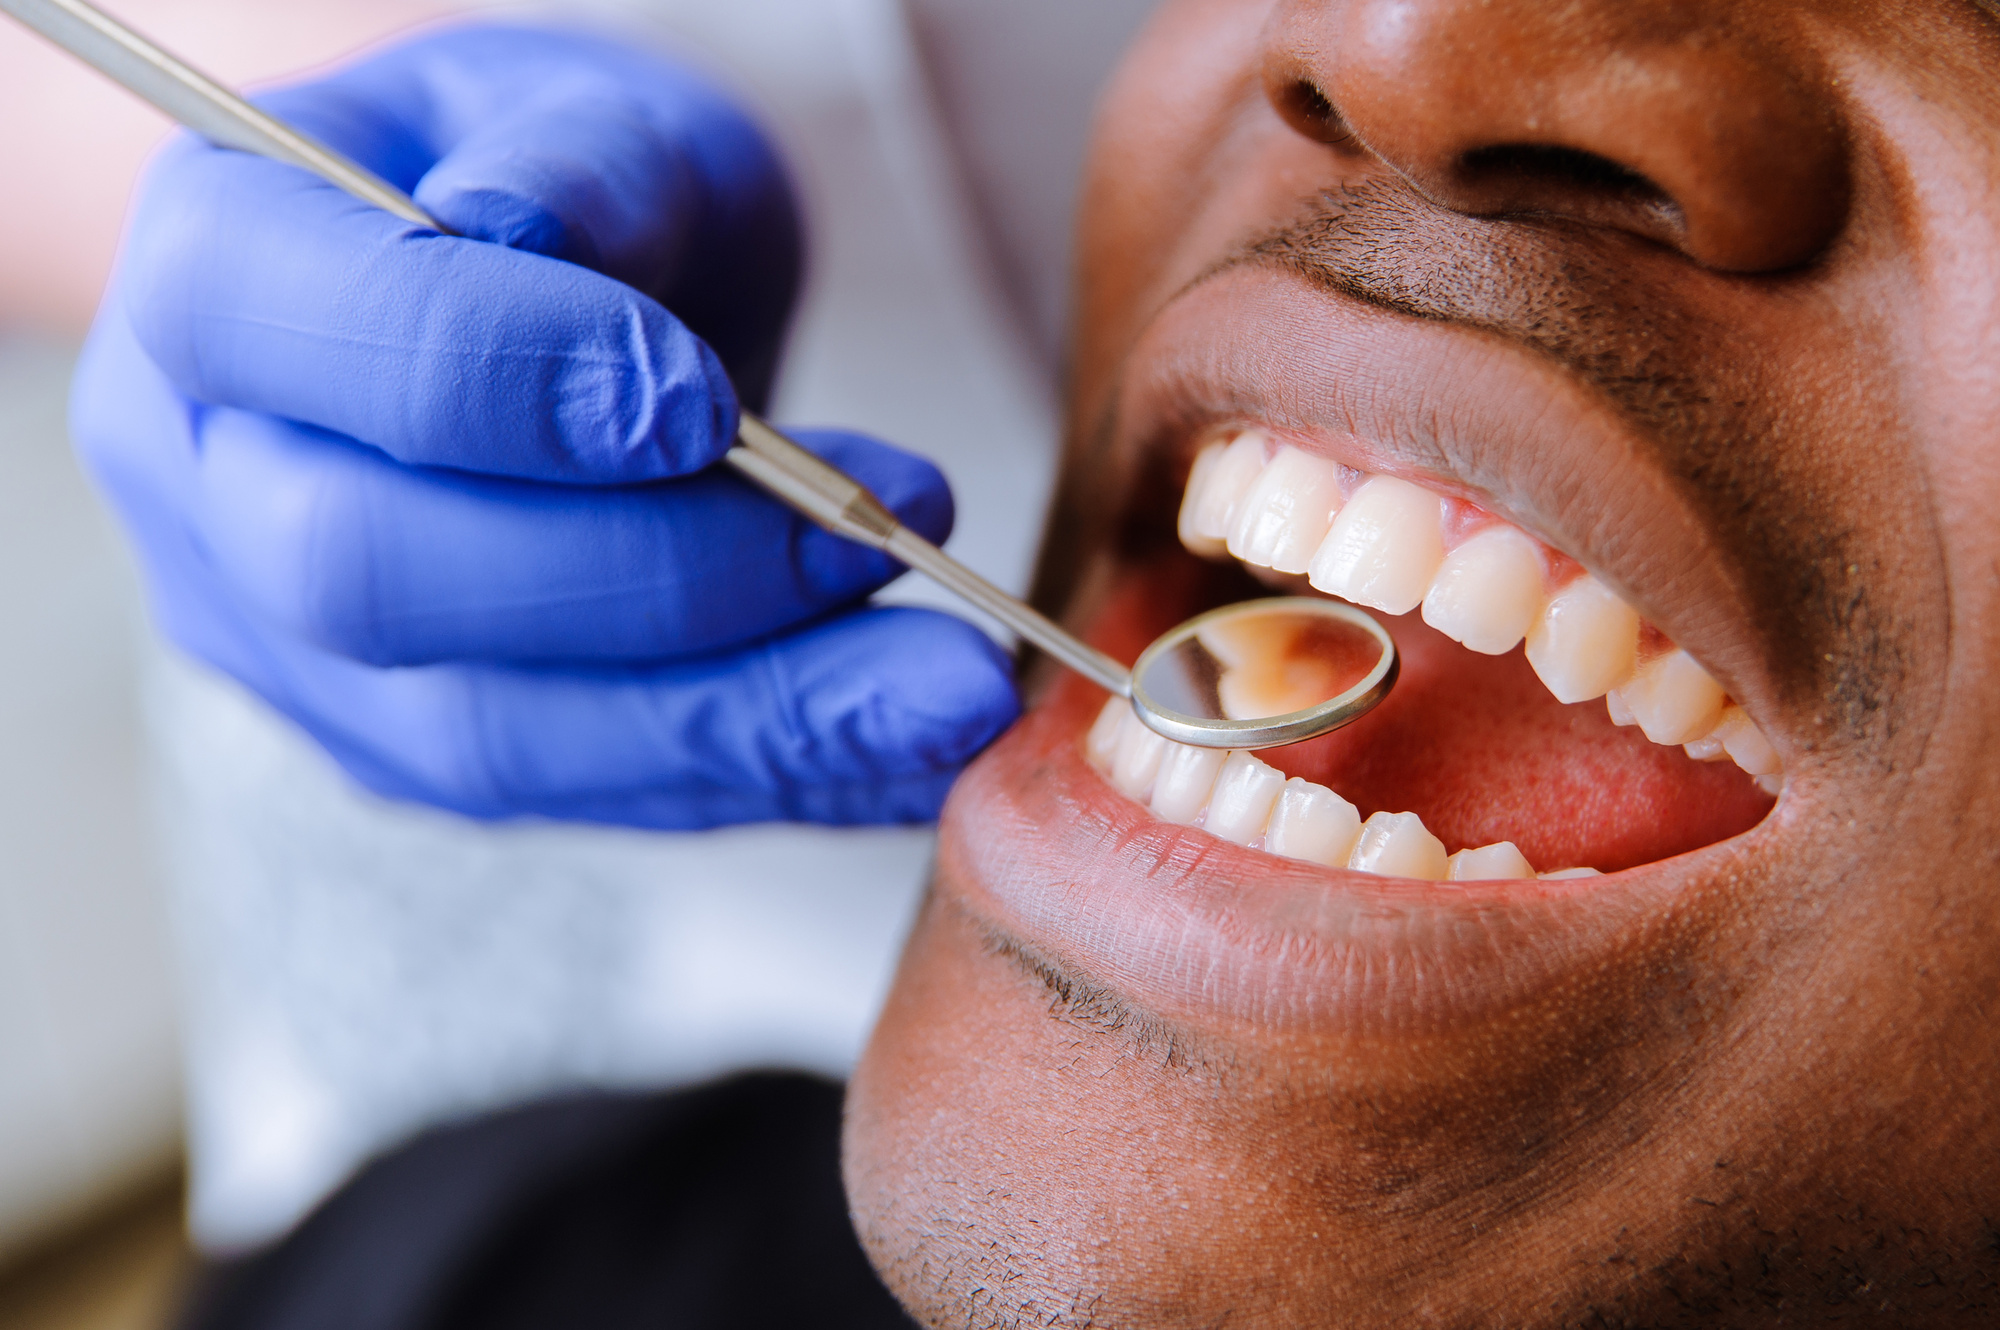 how much does a dentist visit cost